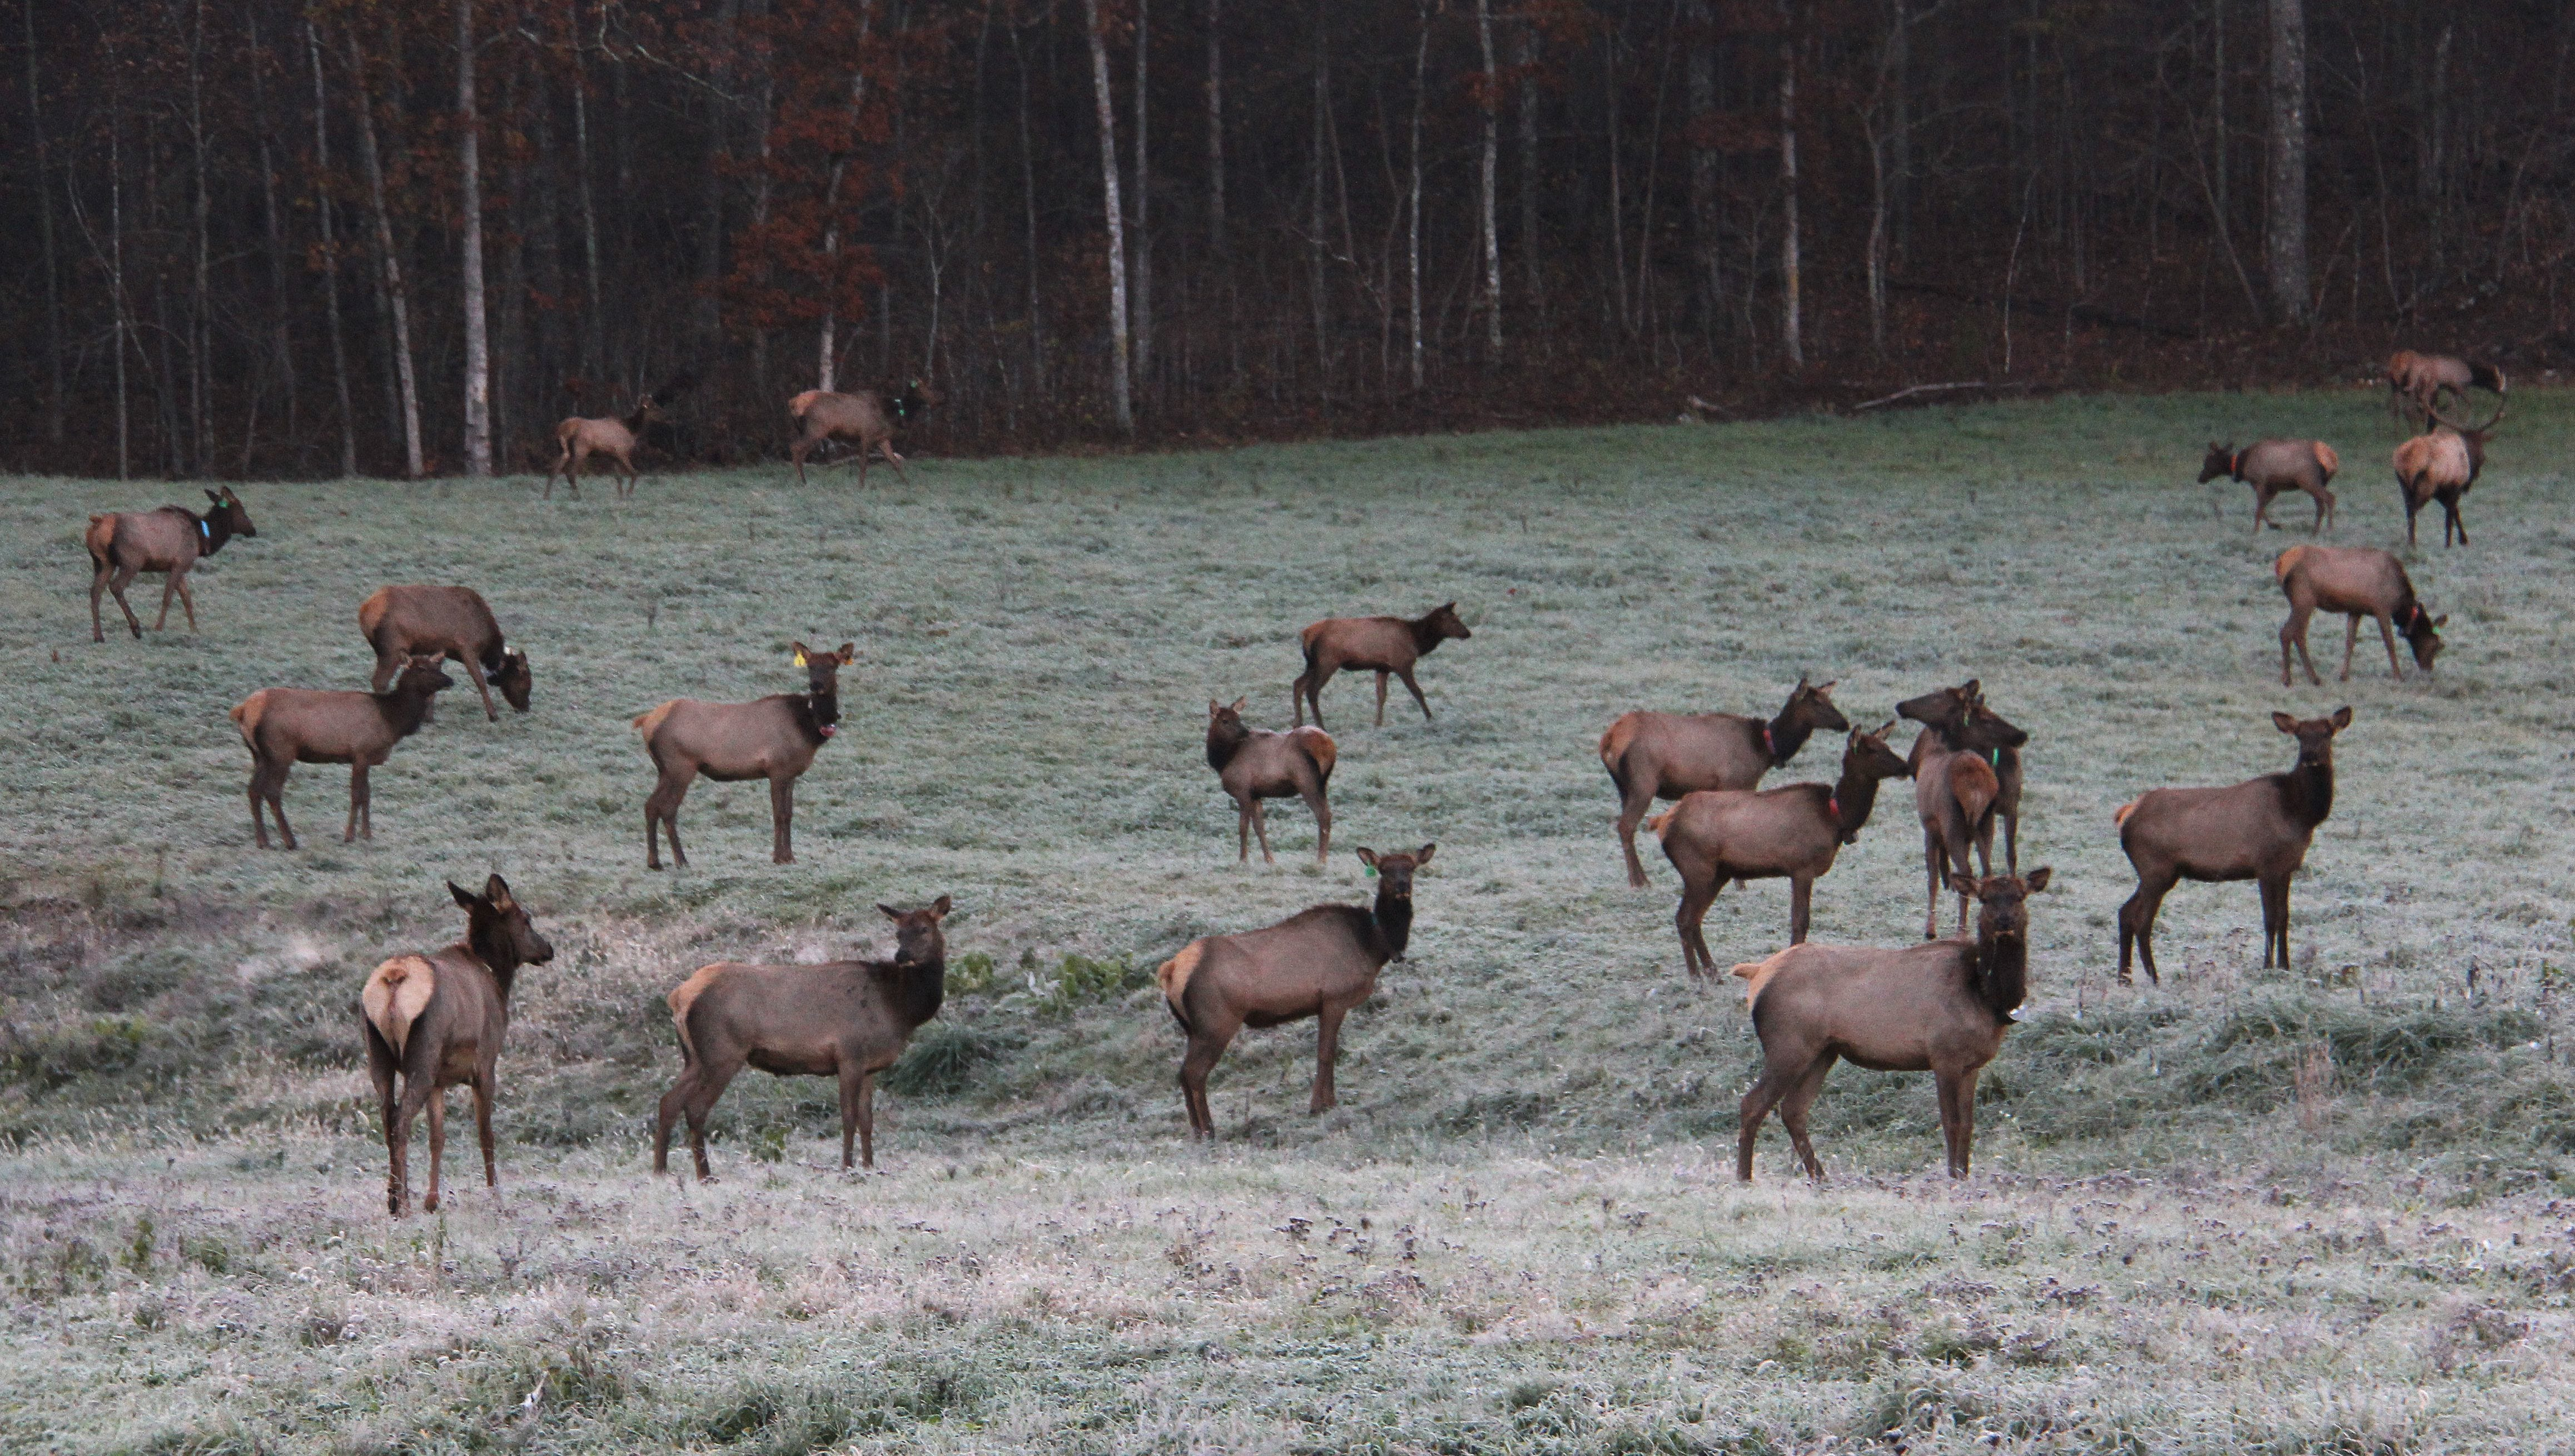 The Conservation Department reintroduced elk to Missouri's Peck Ranch in southeast Missouri in 2011